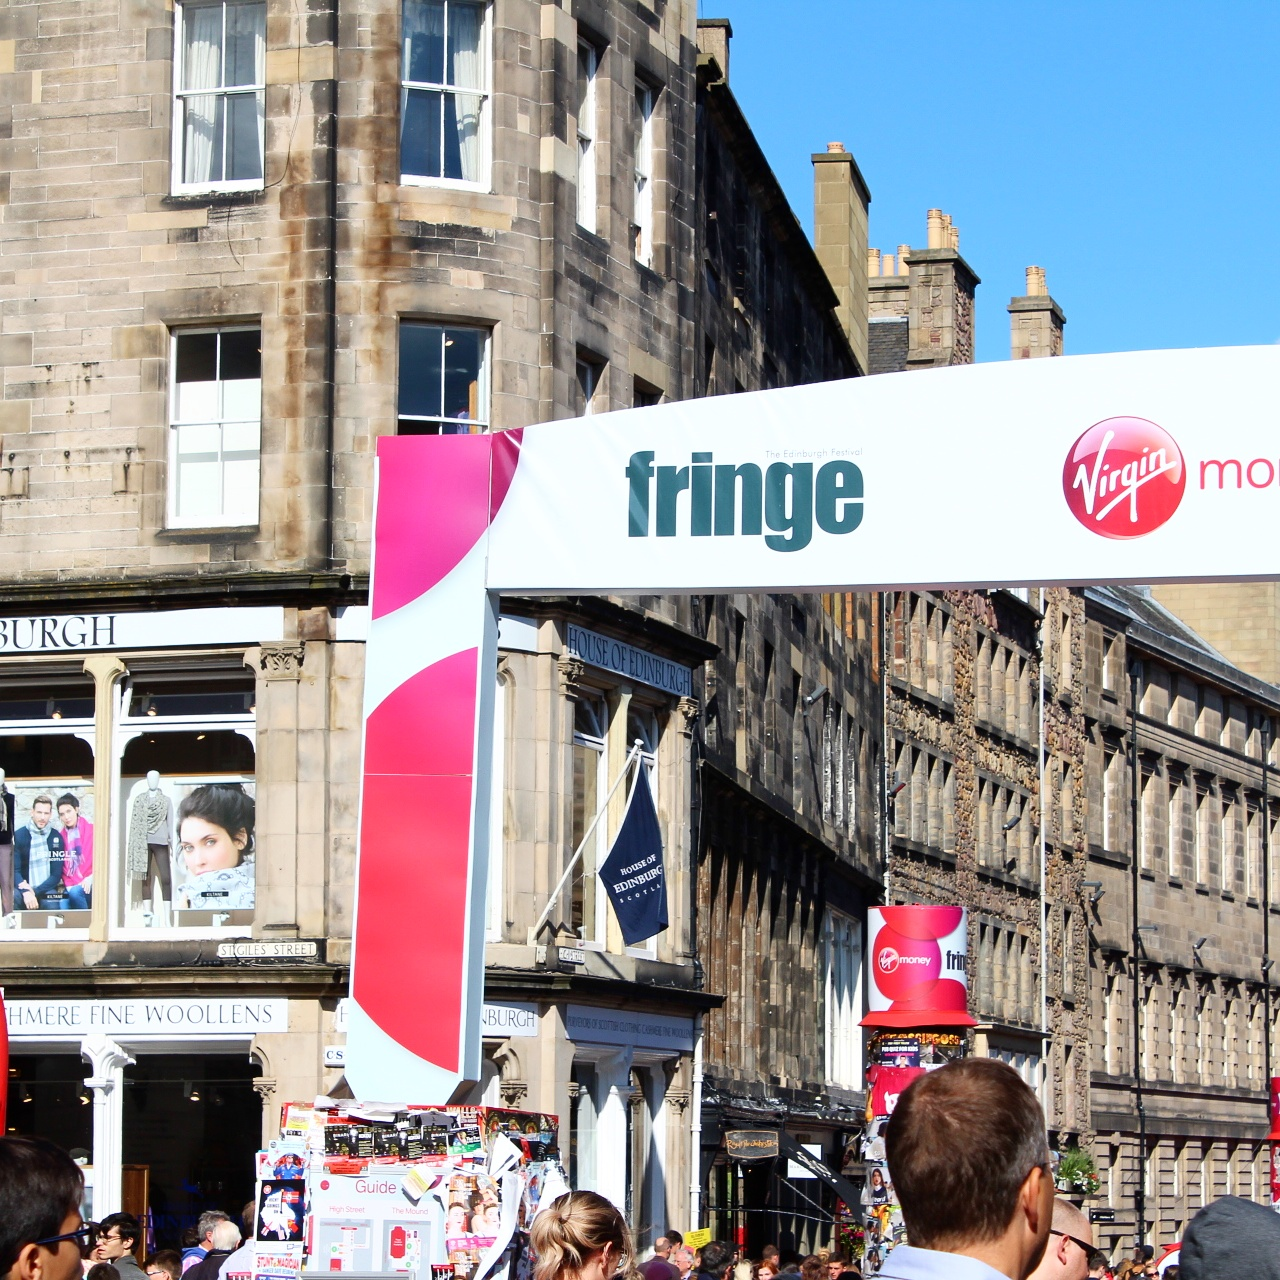 Photo Diary | Edinburgh Family Day Out on a Budget